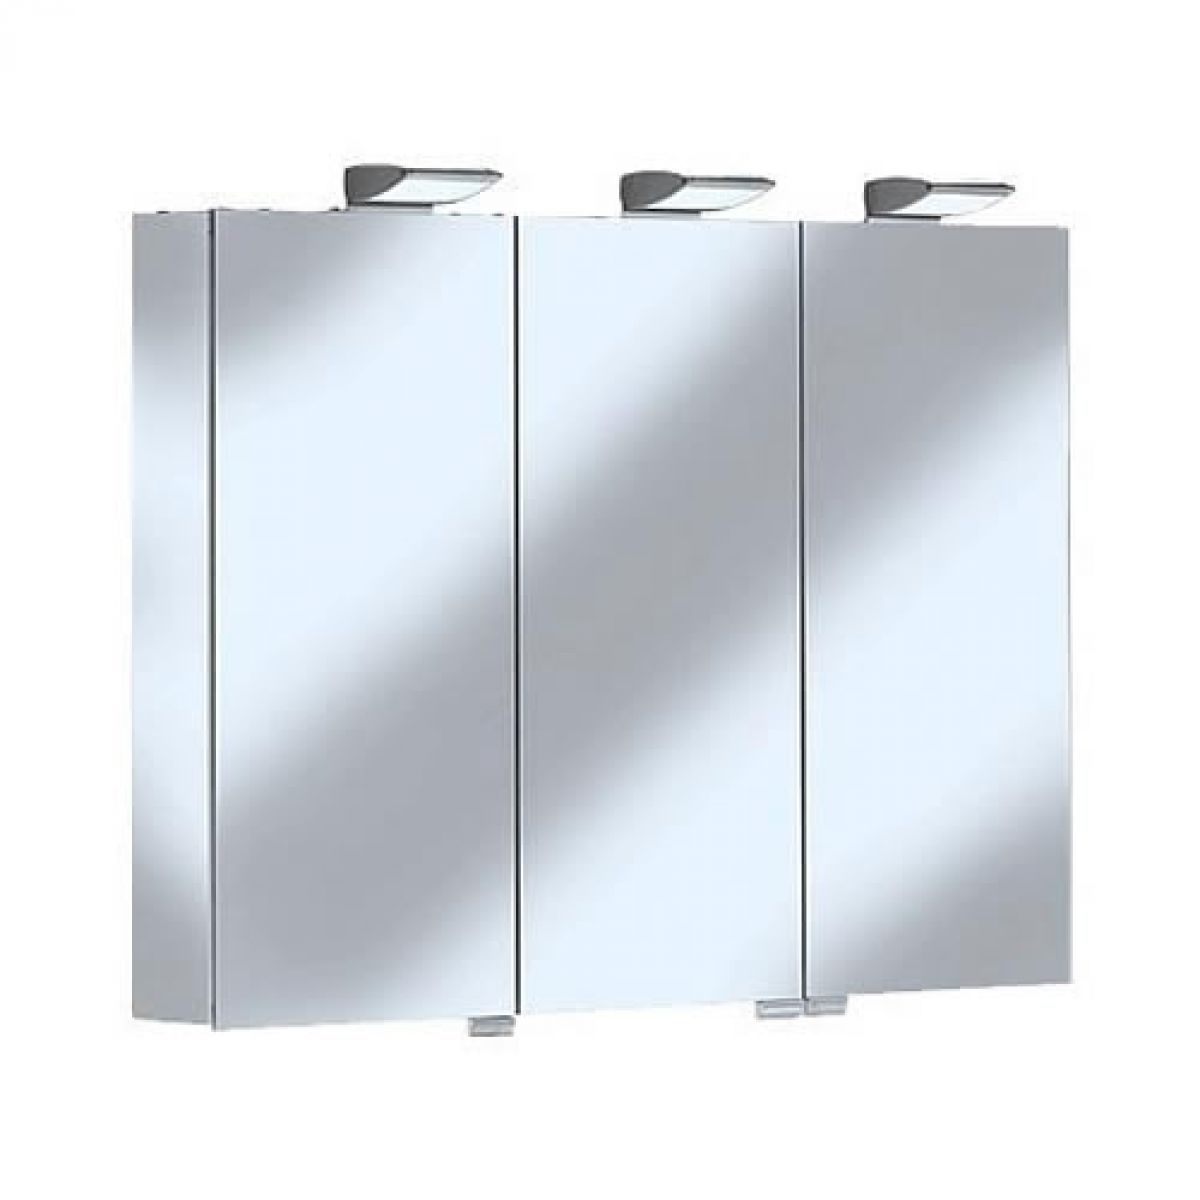 35 1000mm bathroom cabinet home bathroom furniture bathroom cabinets